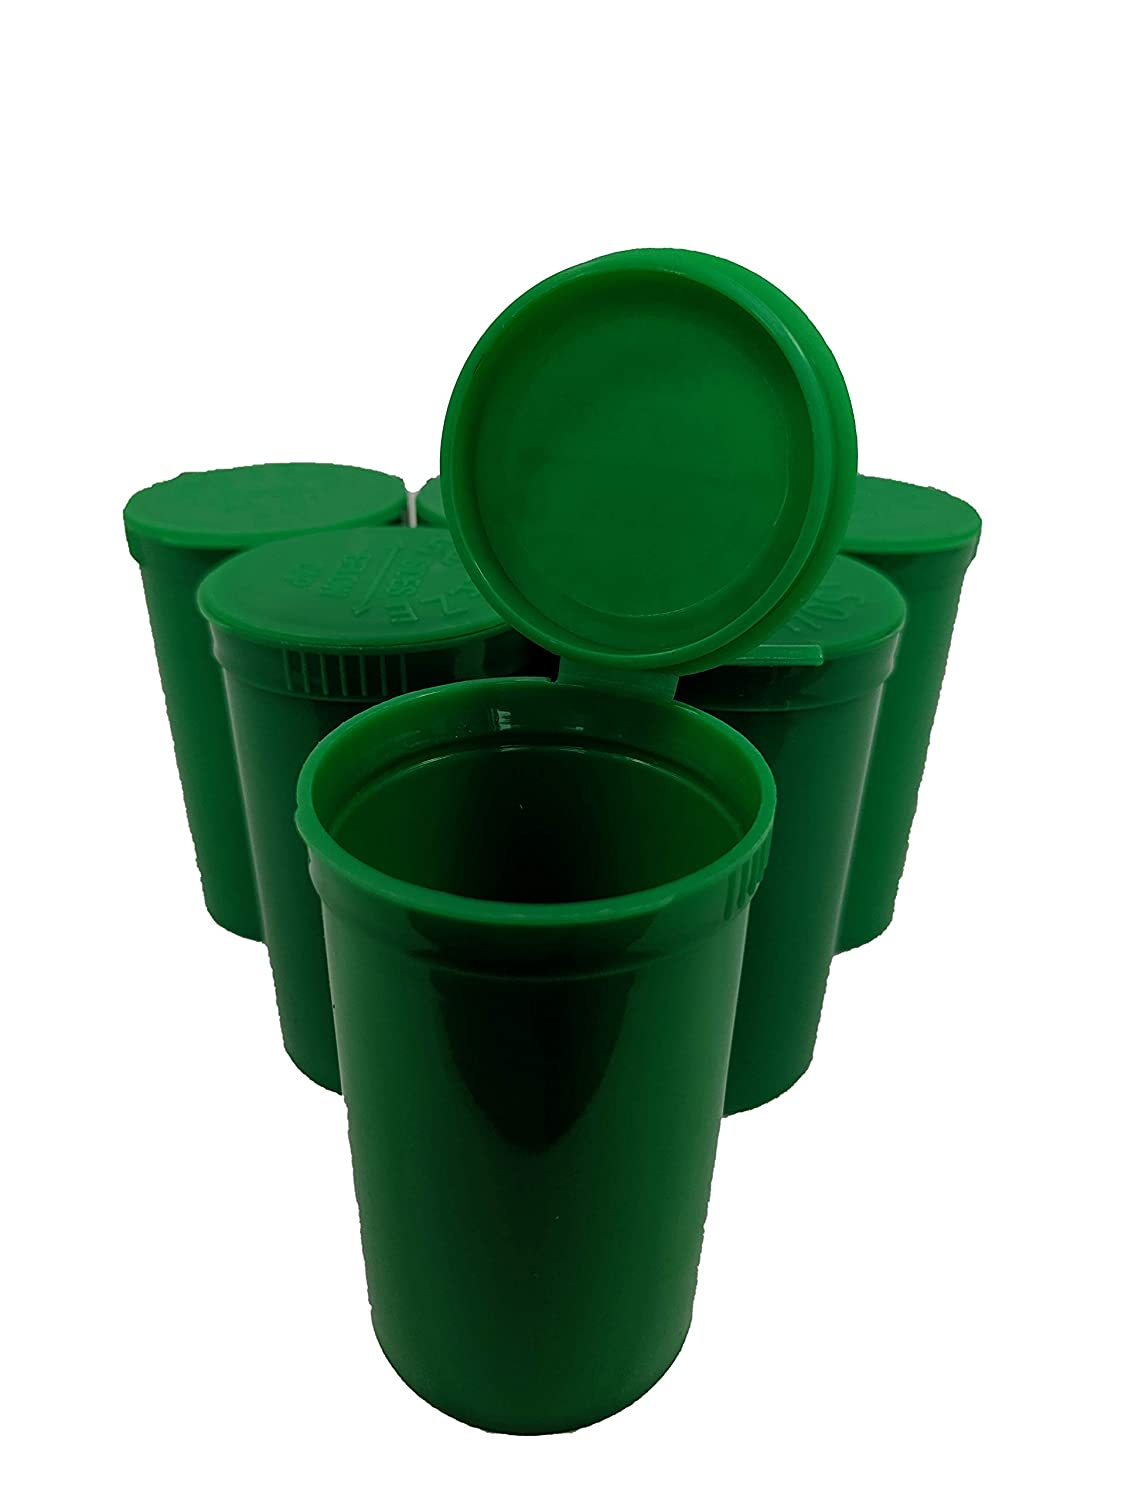 Full Case of 225-Green 19 Dram Pop Top Bottle Rx Vial Medical Grade Pill Box Herb Container